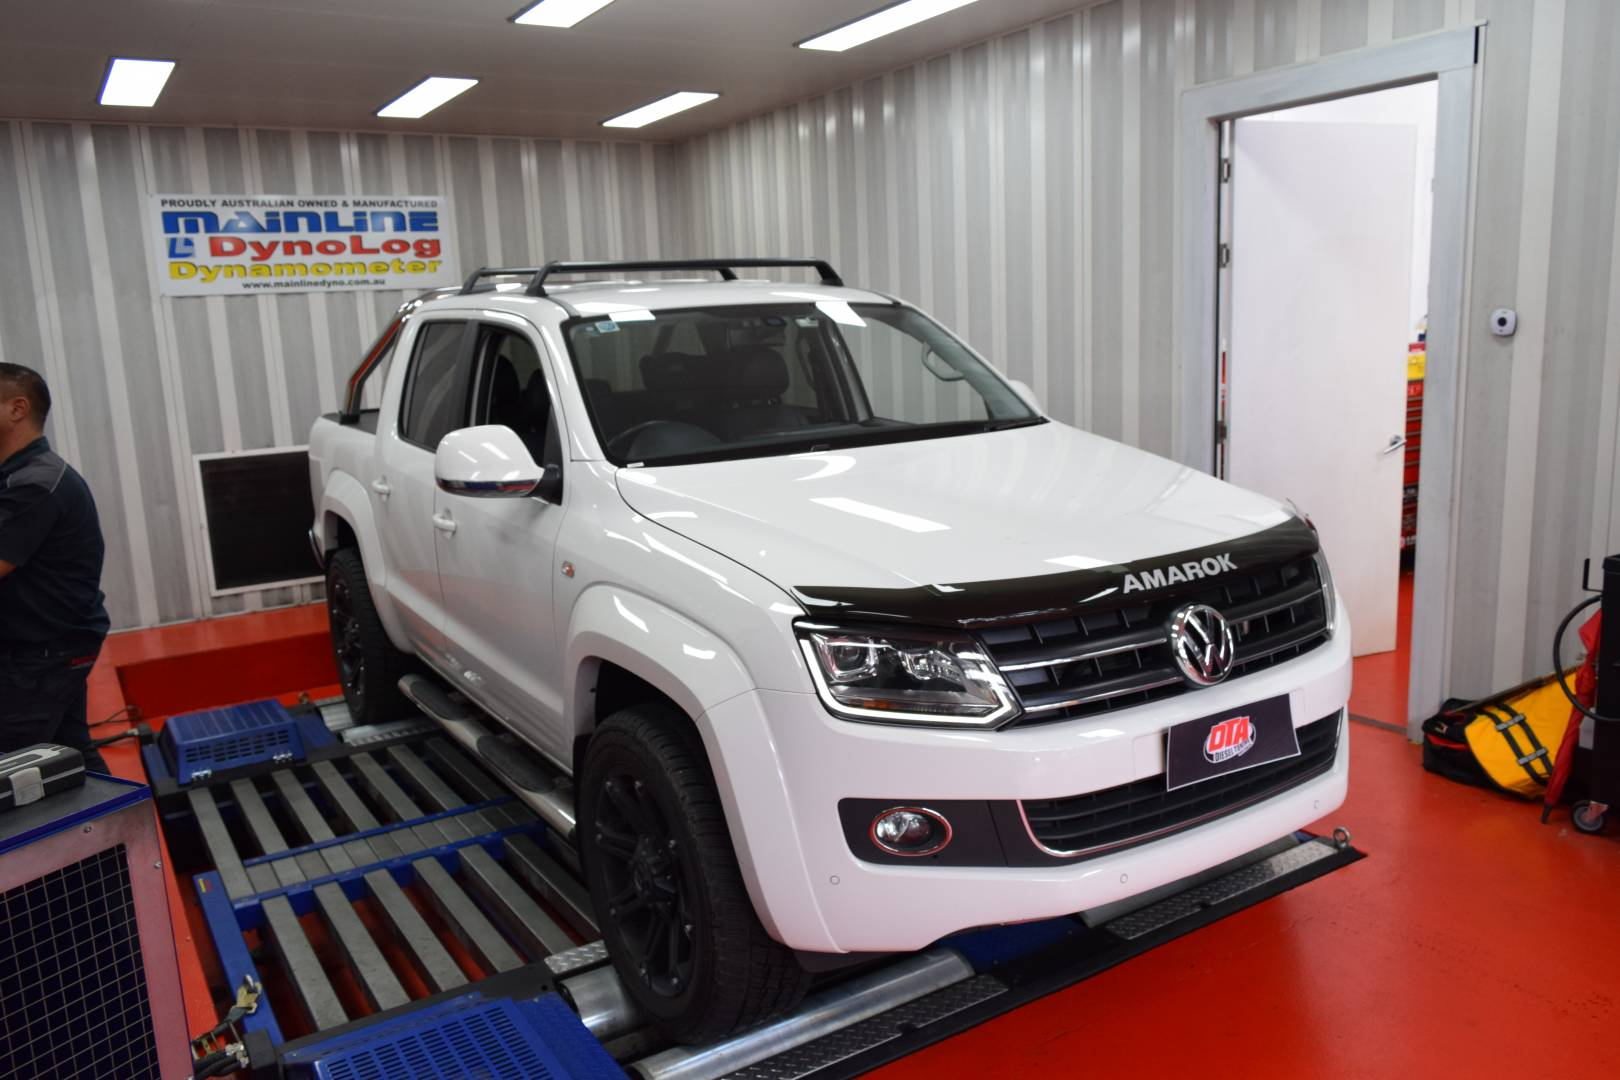 Ecu Tuning Performance Car Tuning Custom Dyno Tuning